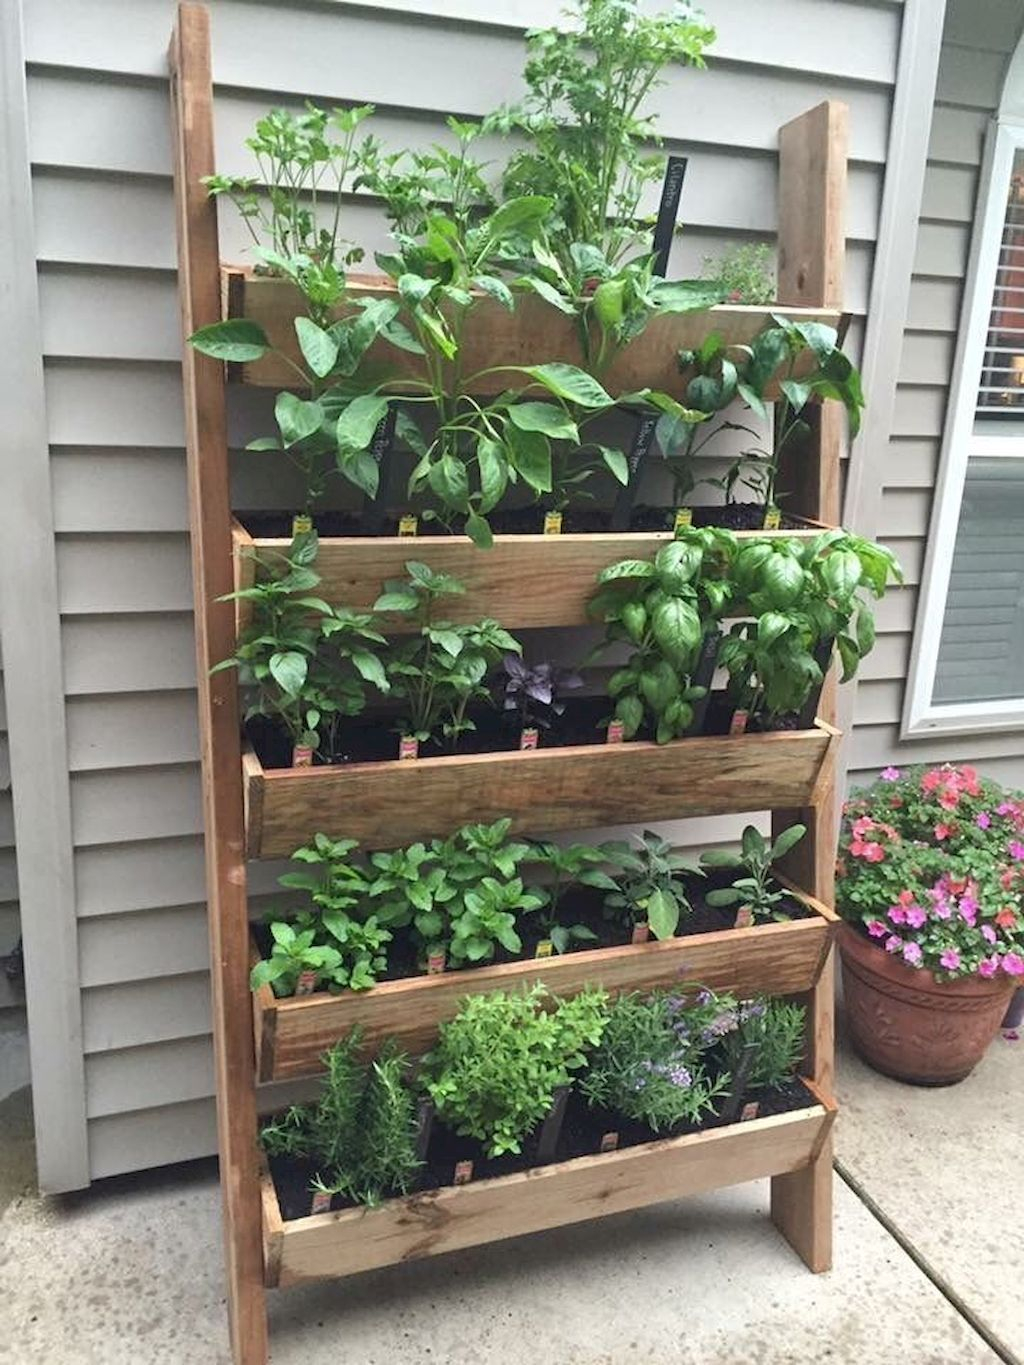 Brilliant Gardening Design Ideas You Need To Know In 202008